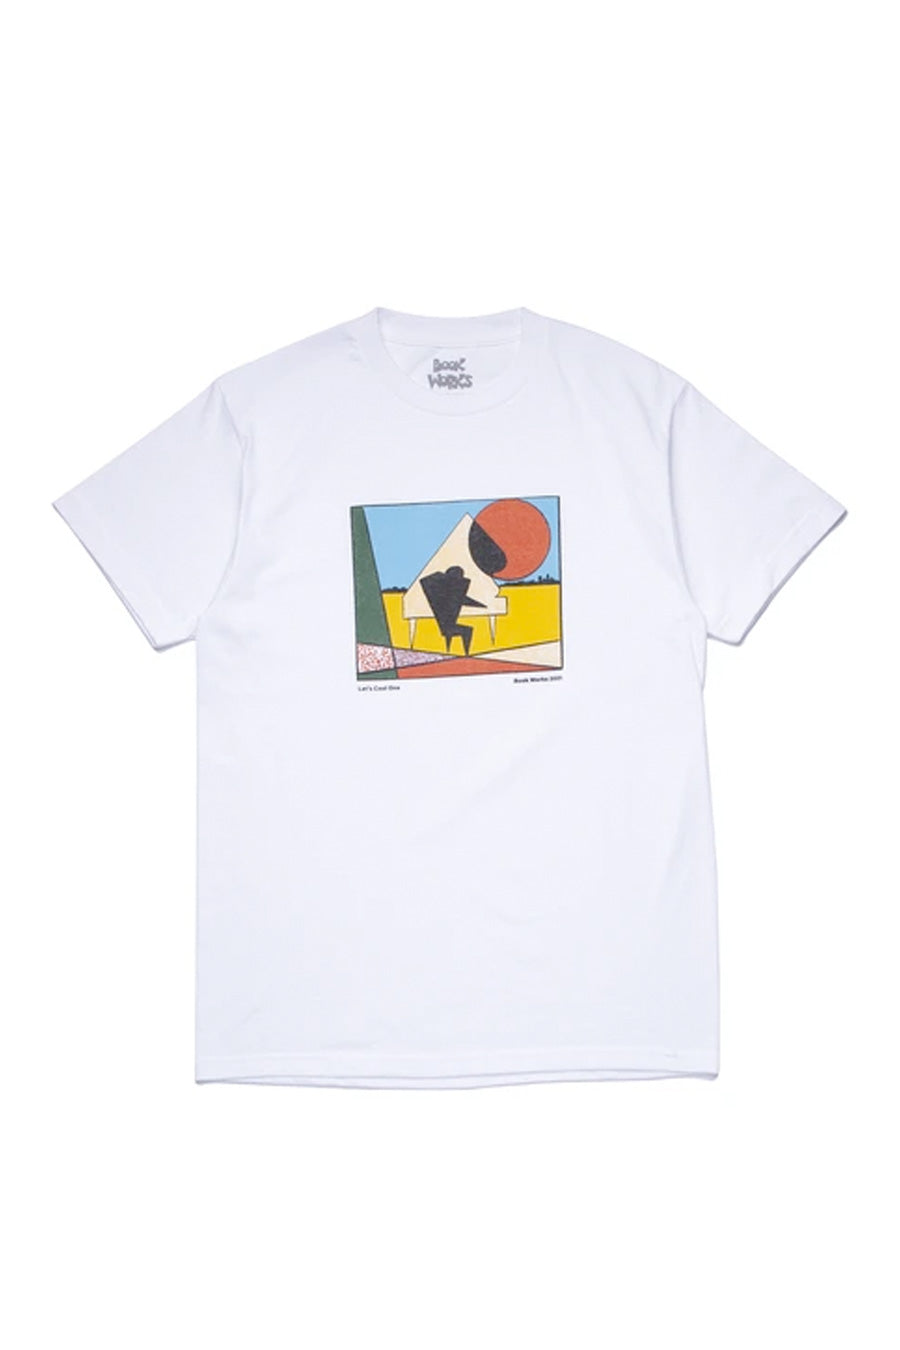 Book Works - White Let's Cool One T-Shirt | 1032 SPACE